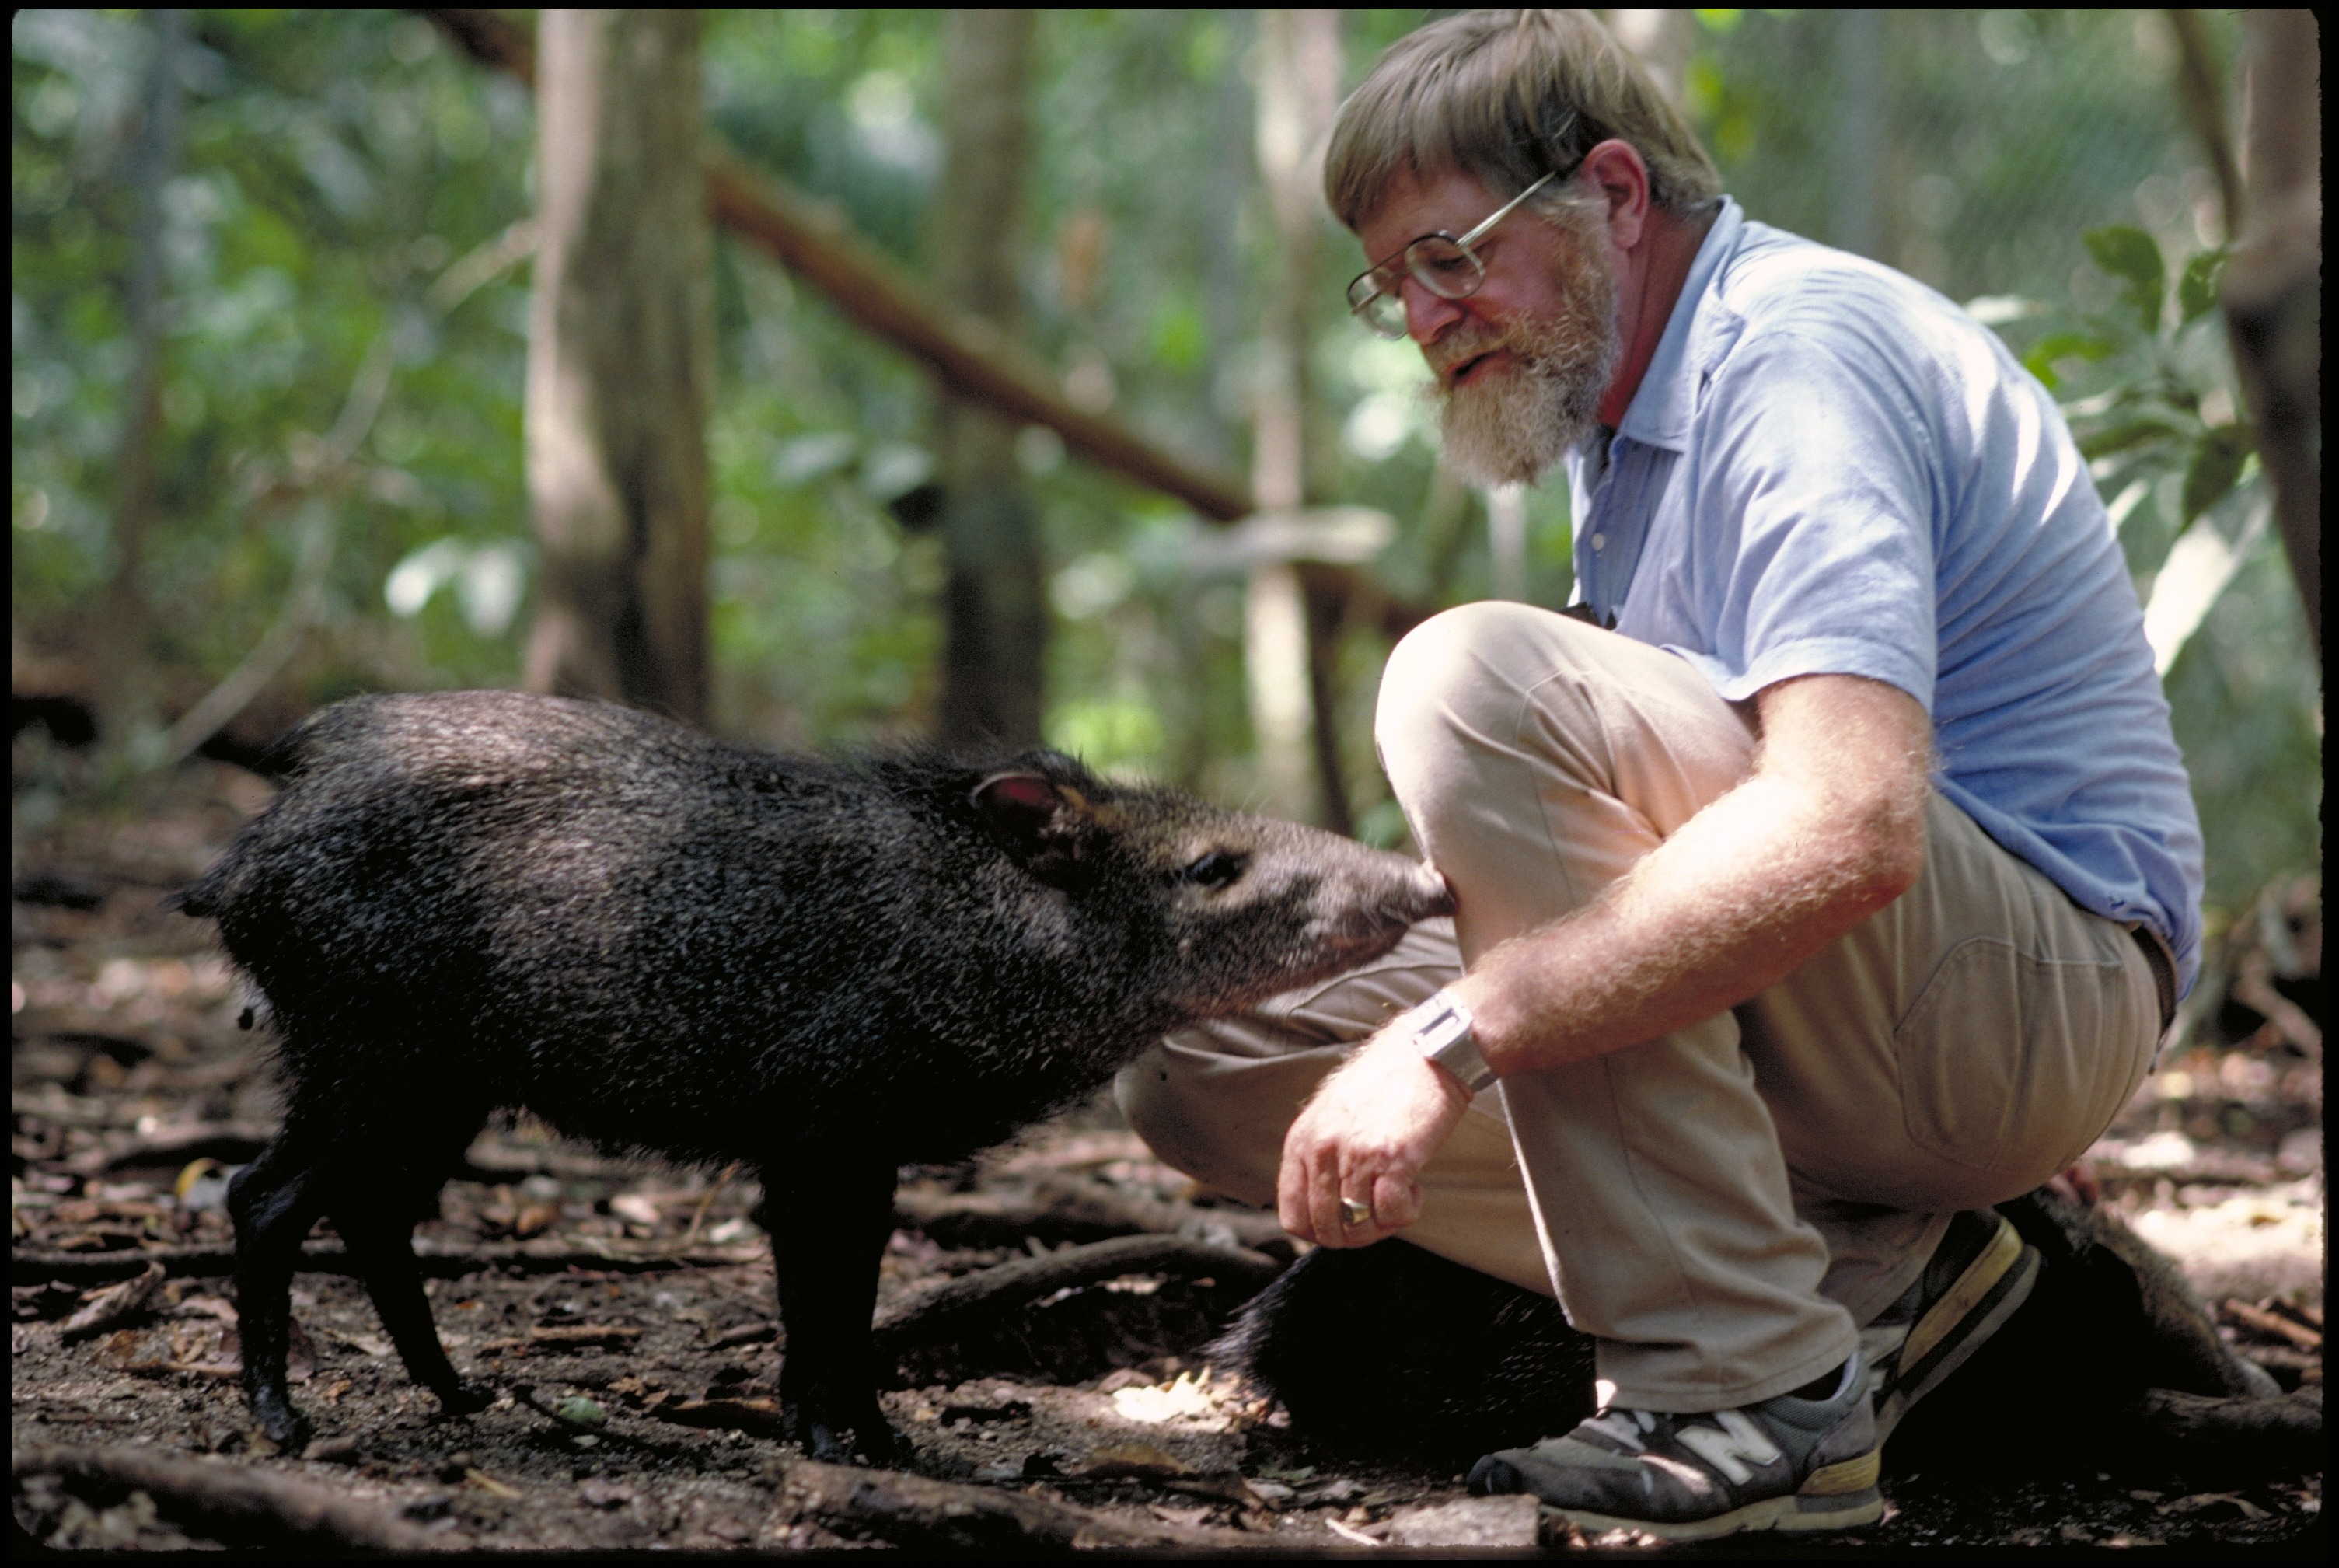 A man kneels down toward Peccary which looks sort of like a small hog.